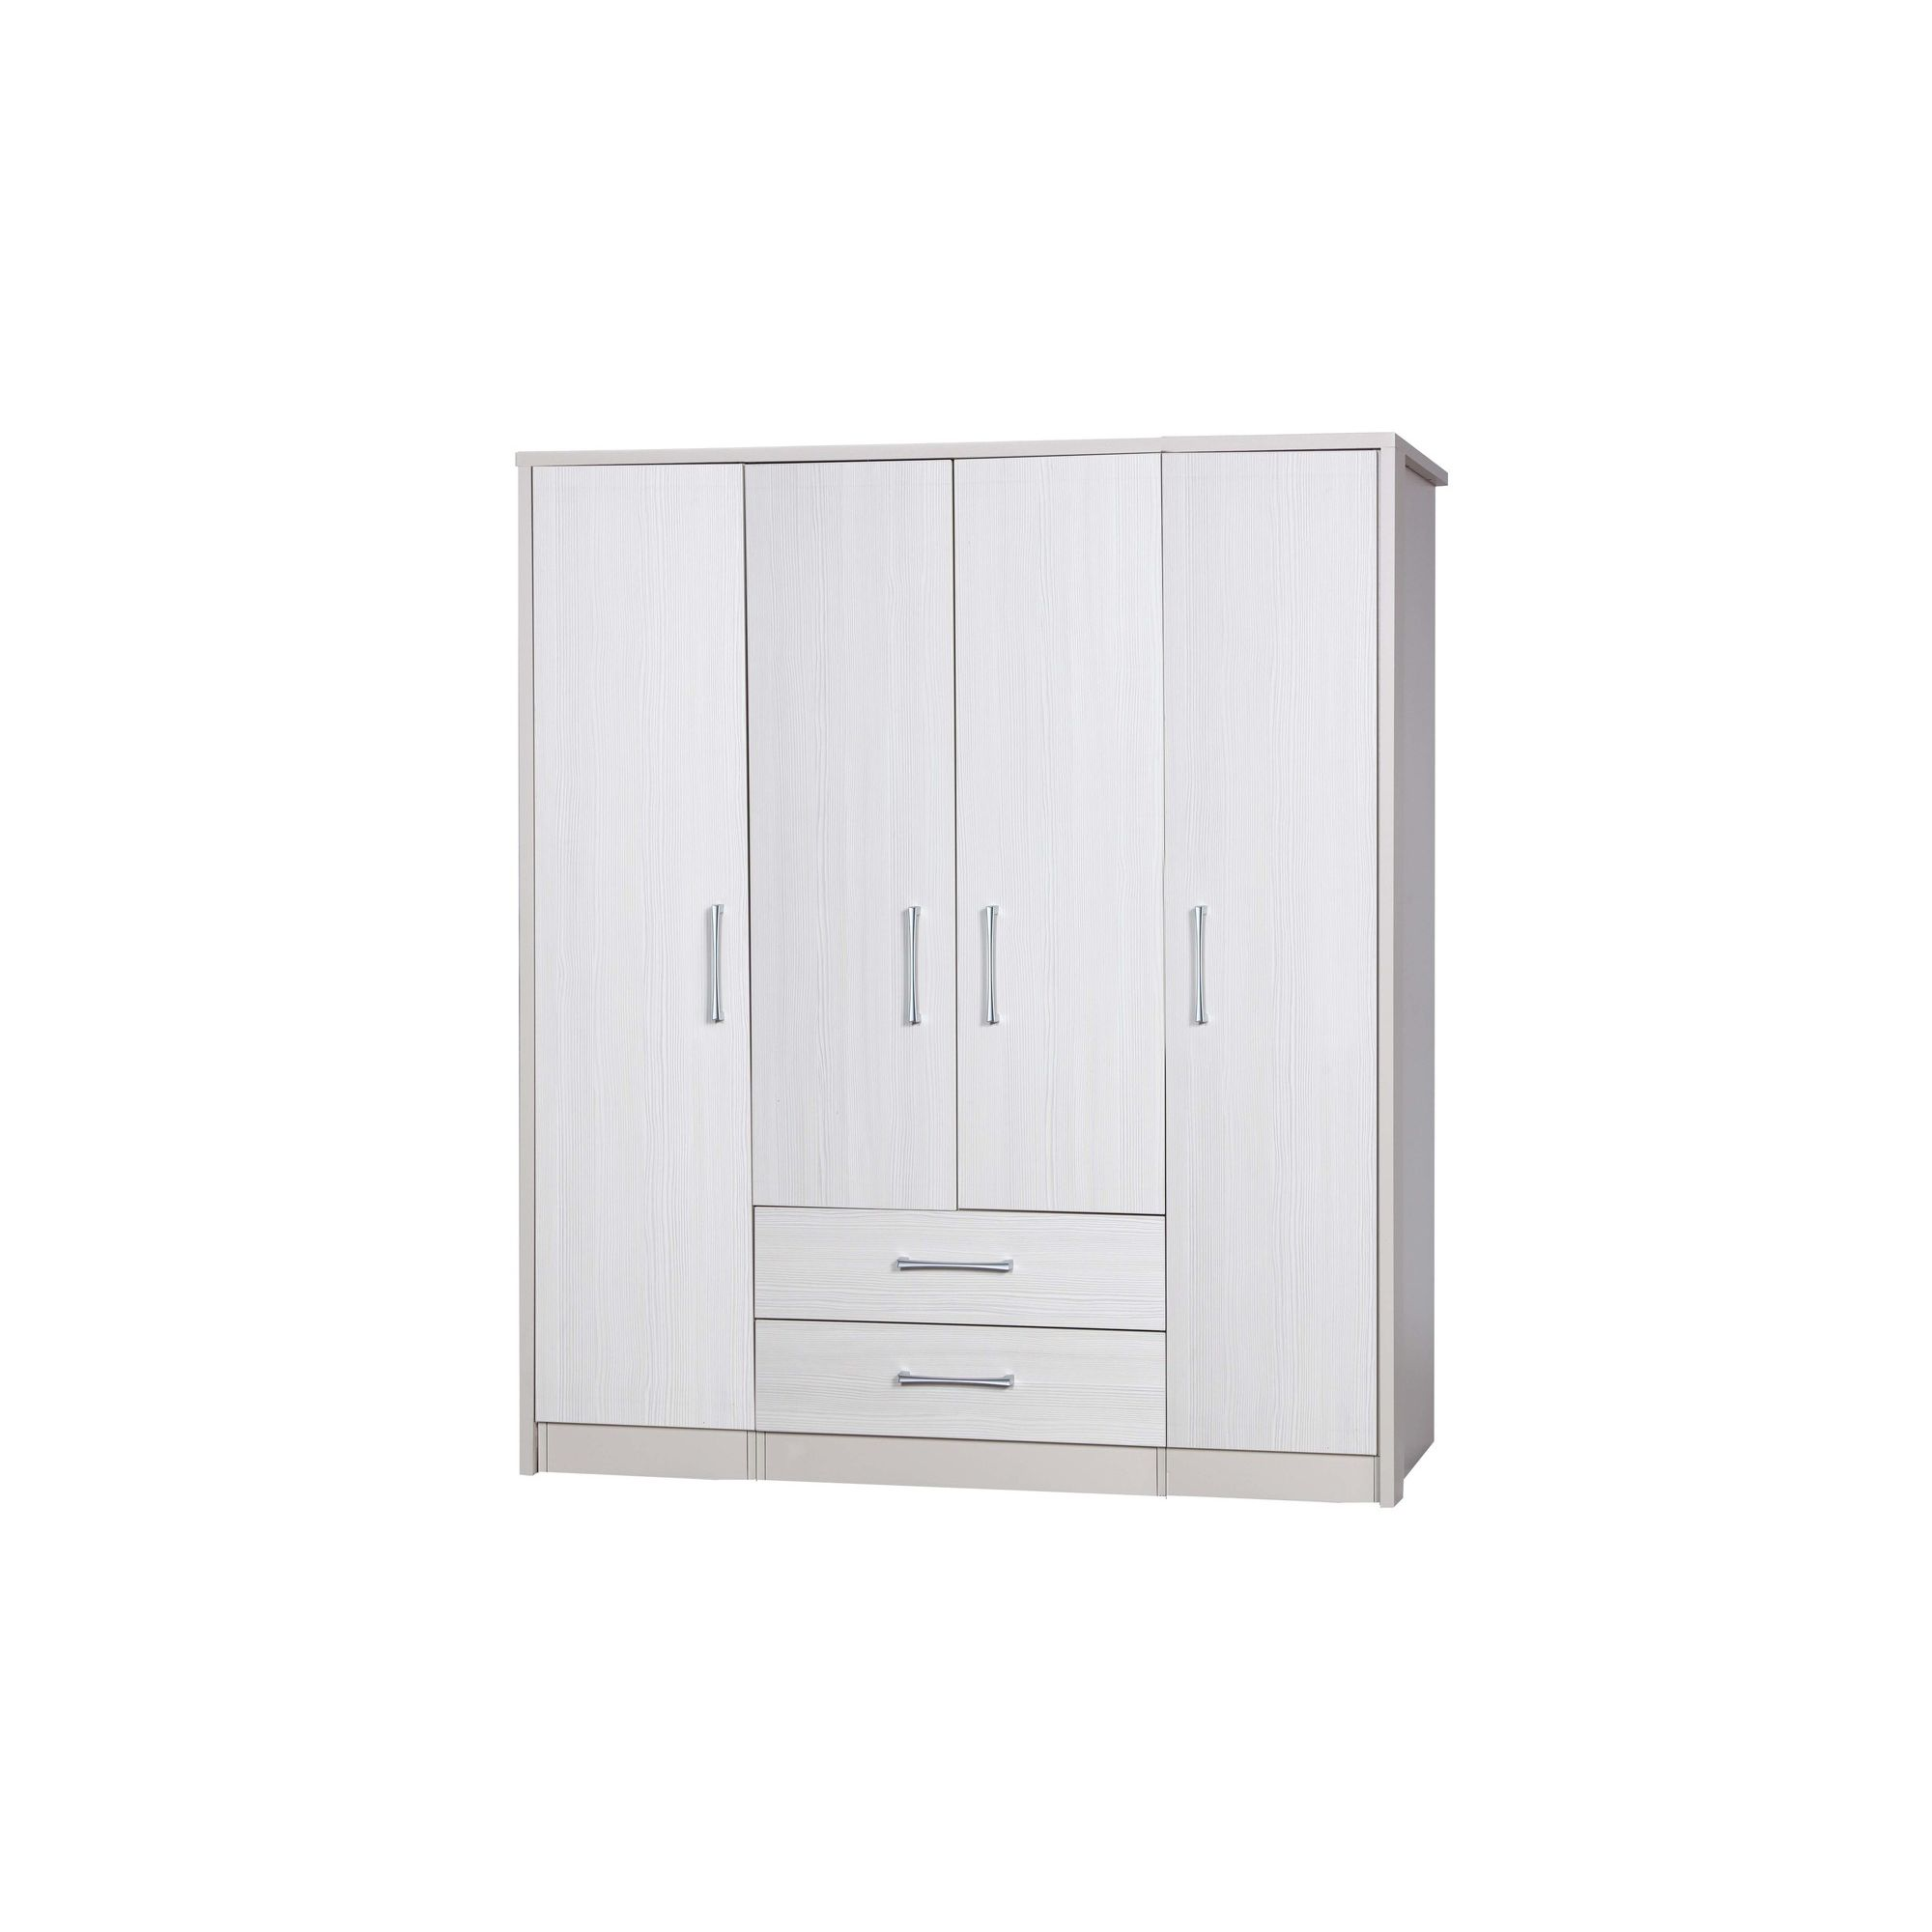 Alto Furniture Avola 4 Door Combi and Singles Wardrobe - Cream Carcass With White Avola at Tescos Direct